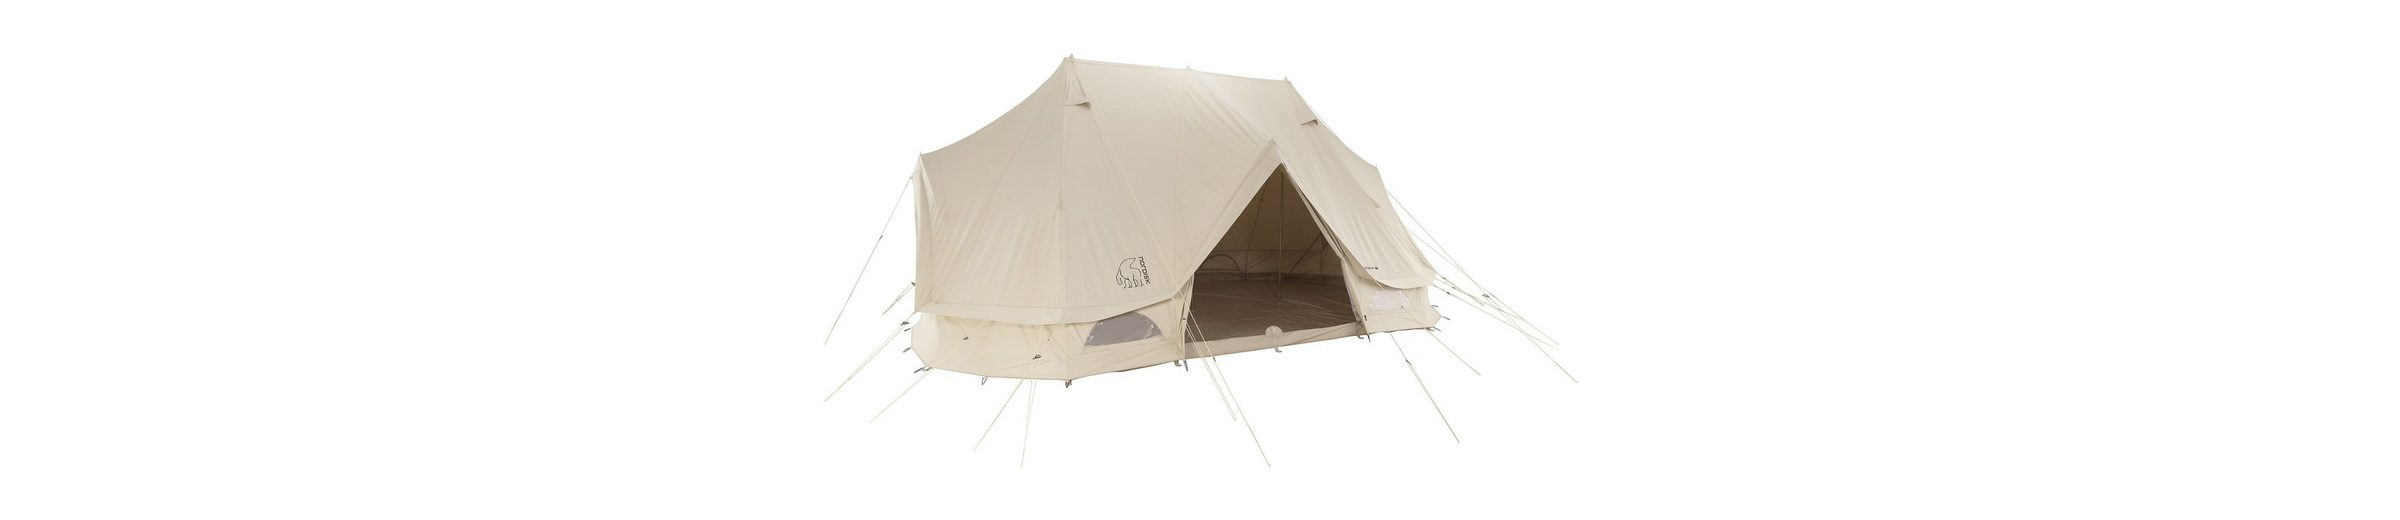 Nordisk Zelt »Vanaheim 24 m² Tent Technical Cotton«